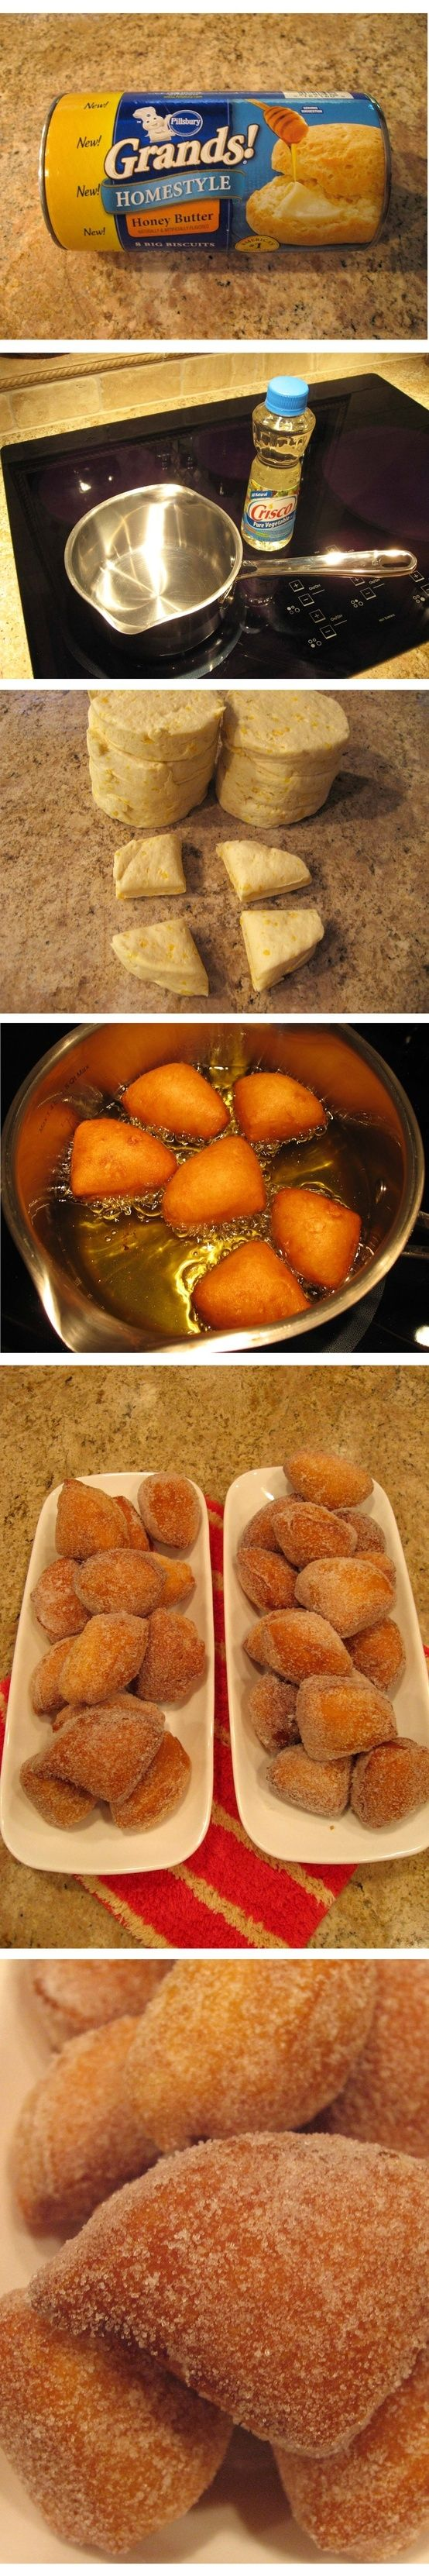 Easy Biscuit Doughnuts - Cut biscuits into quarters, drop in 200 - 240° oil for a couple of minutes (flip halfway), cool sightly on paper. Add condensed milk for dipping